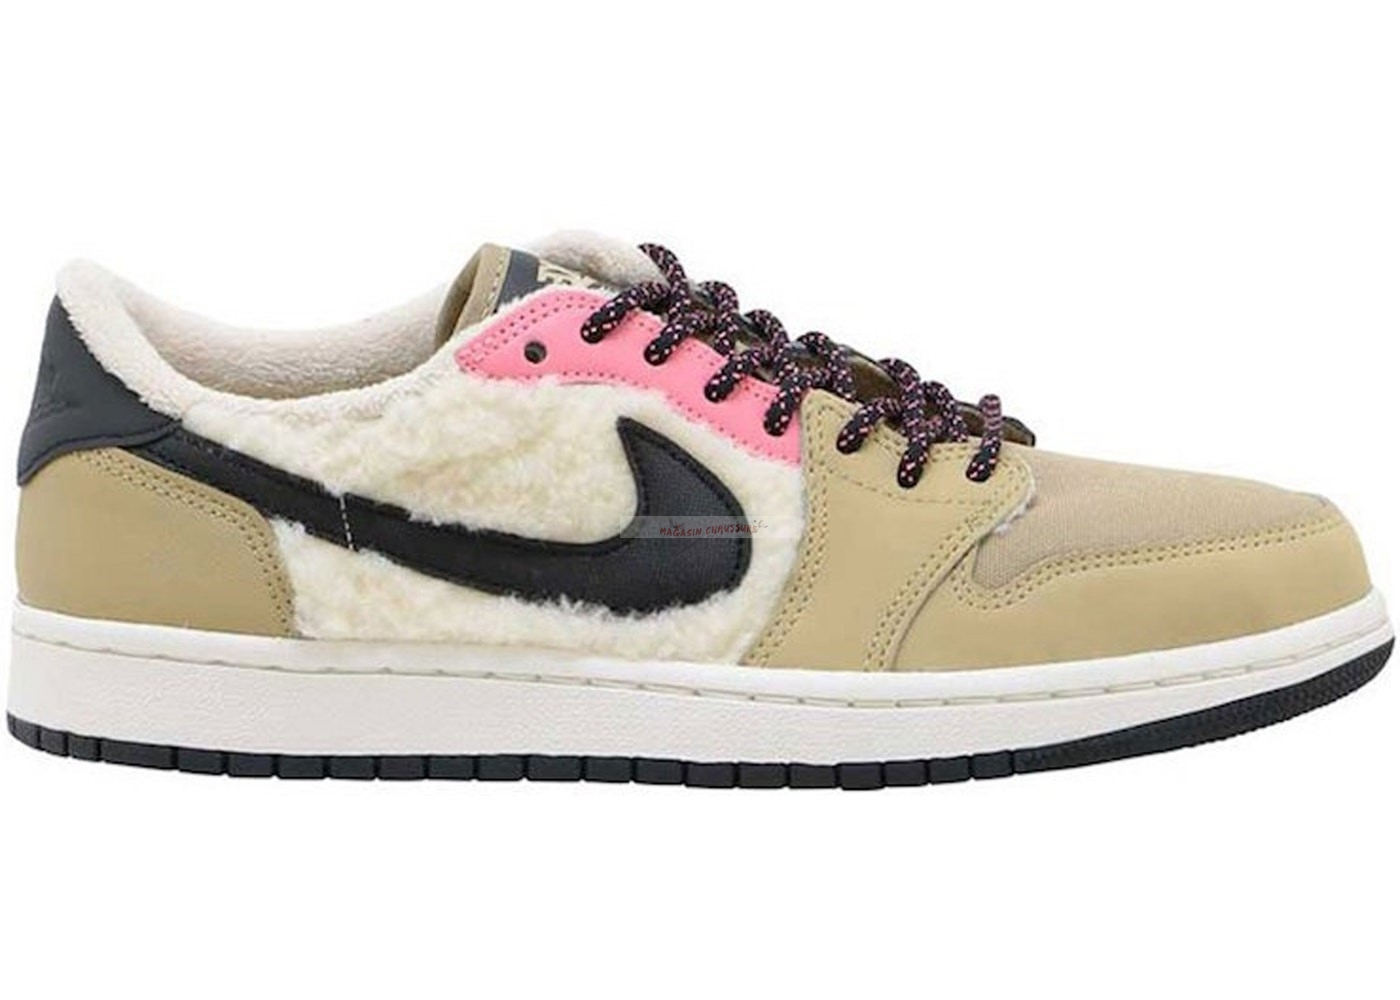 Air Jordan 1 - Femme Retro Low Utility Pack Beige (aq0828-200) Chaussure de Basket